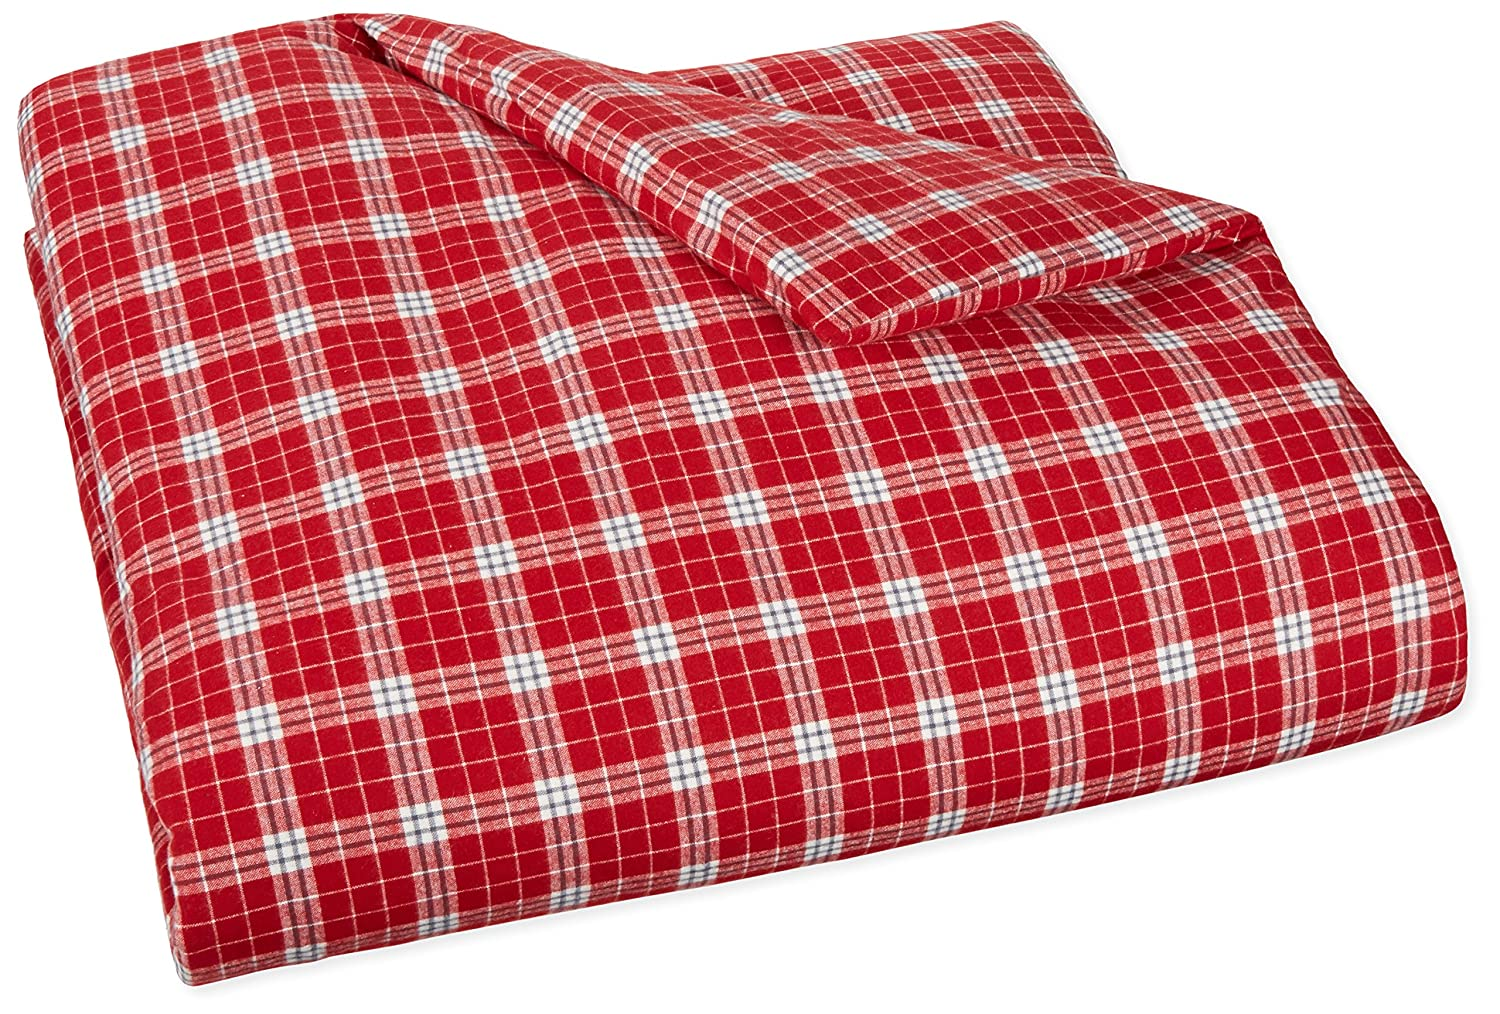 AmazonBasics Yarn-Dyed Lightweight Flannel Duvet Cover - Full/Queen, Bordeaux Plaid